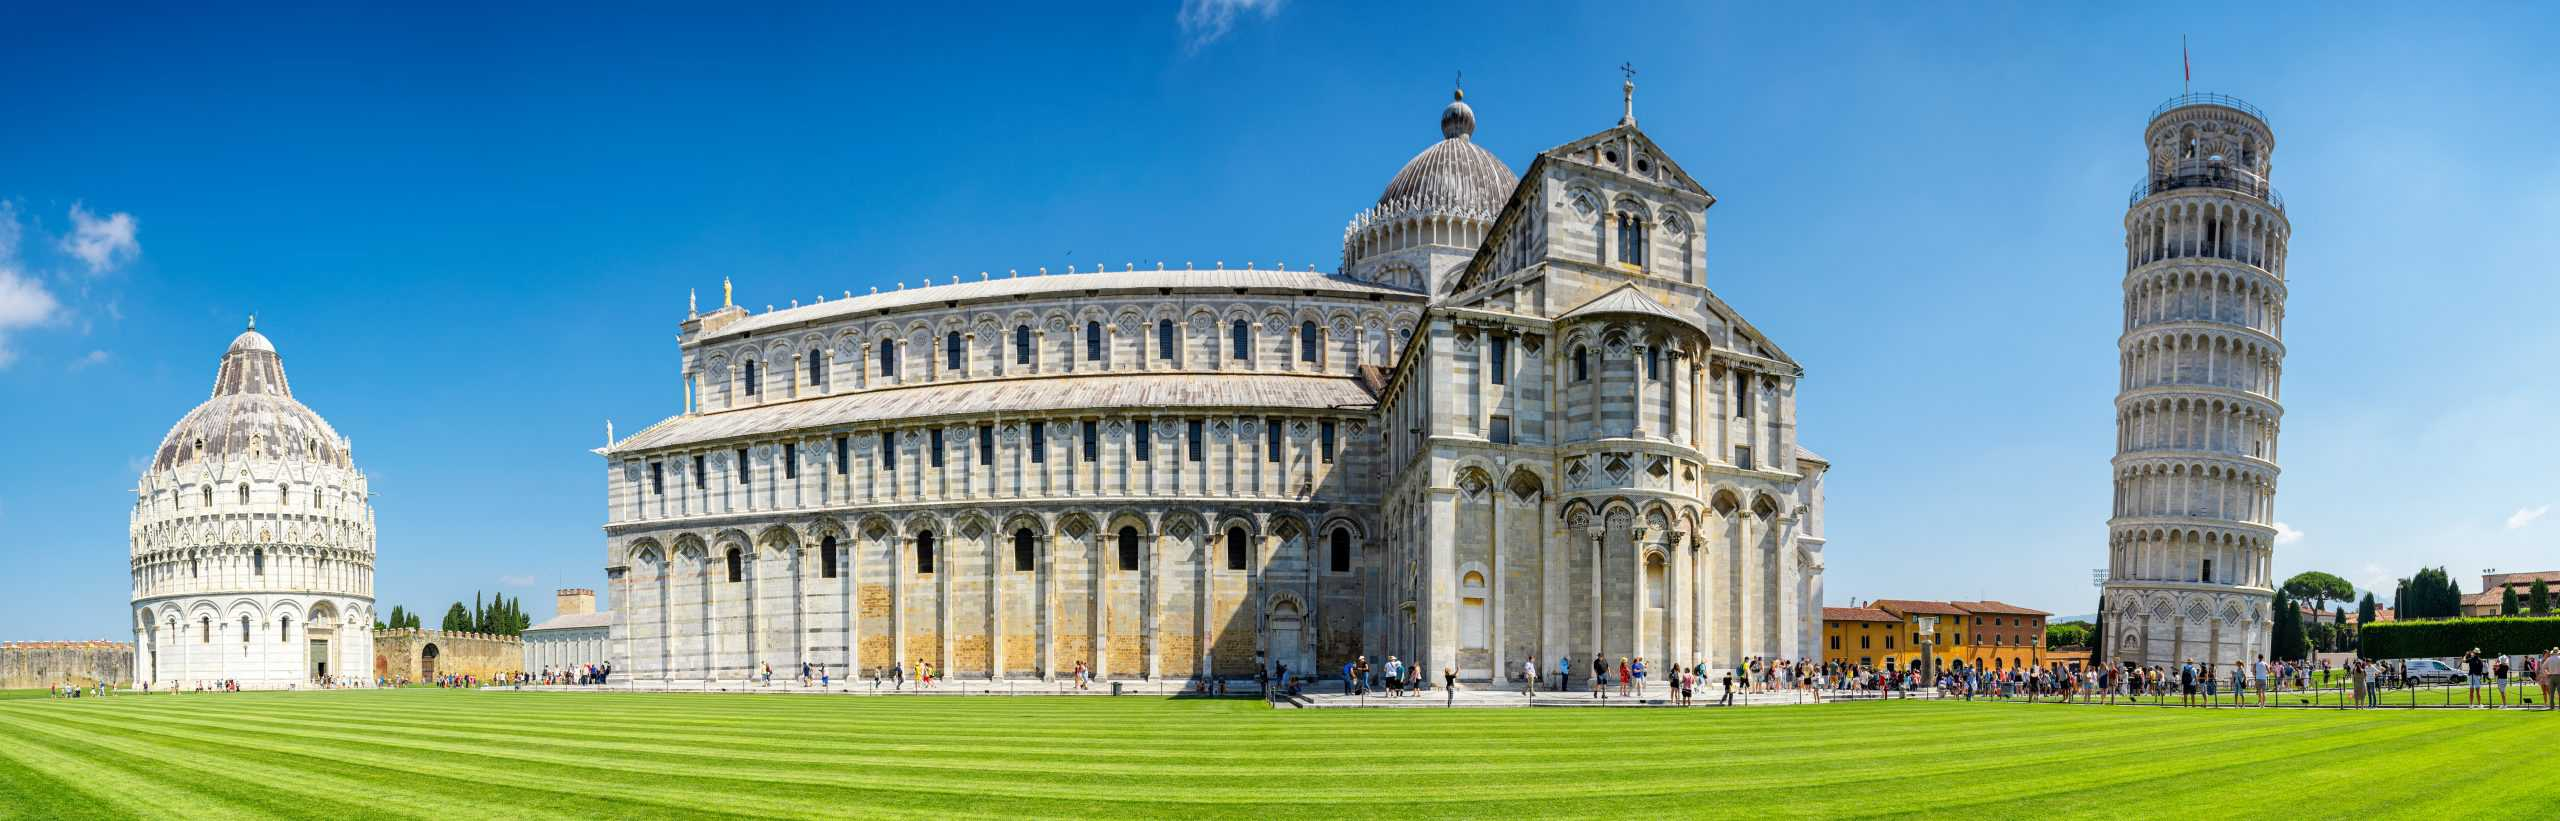 Panorama of leaning tower of Pisa and Cathedral